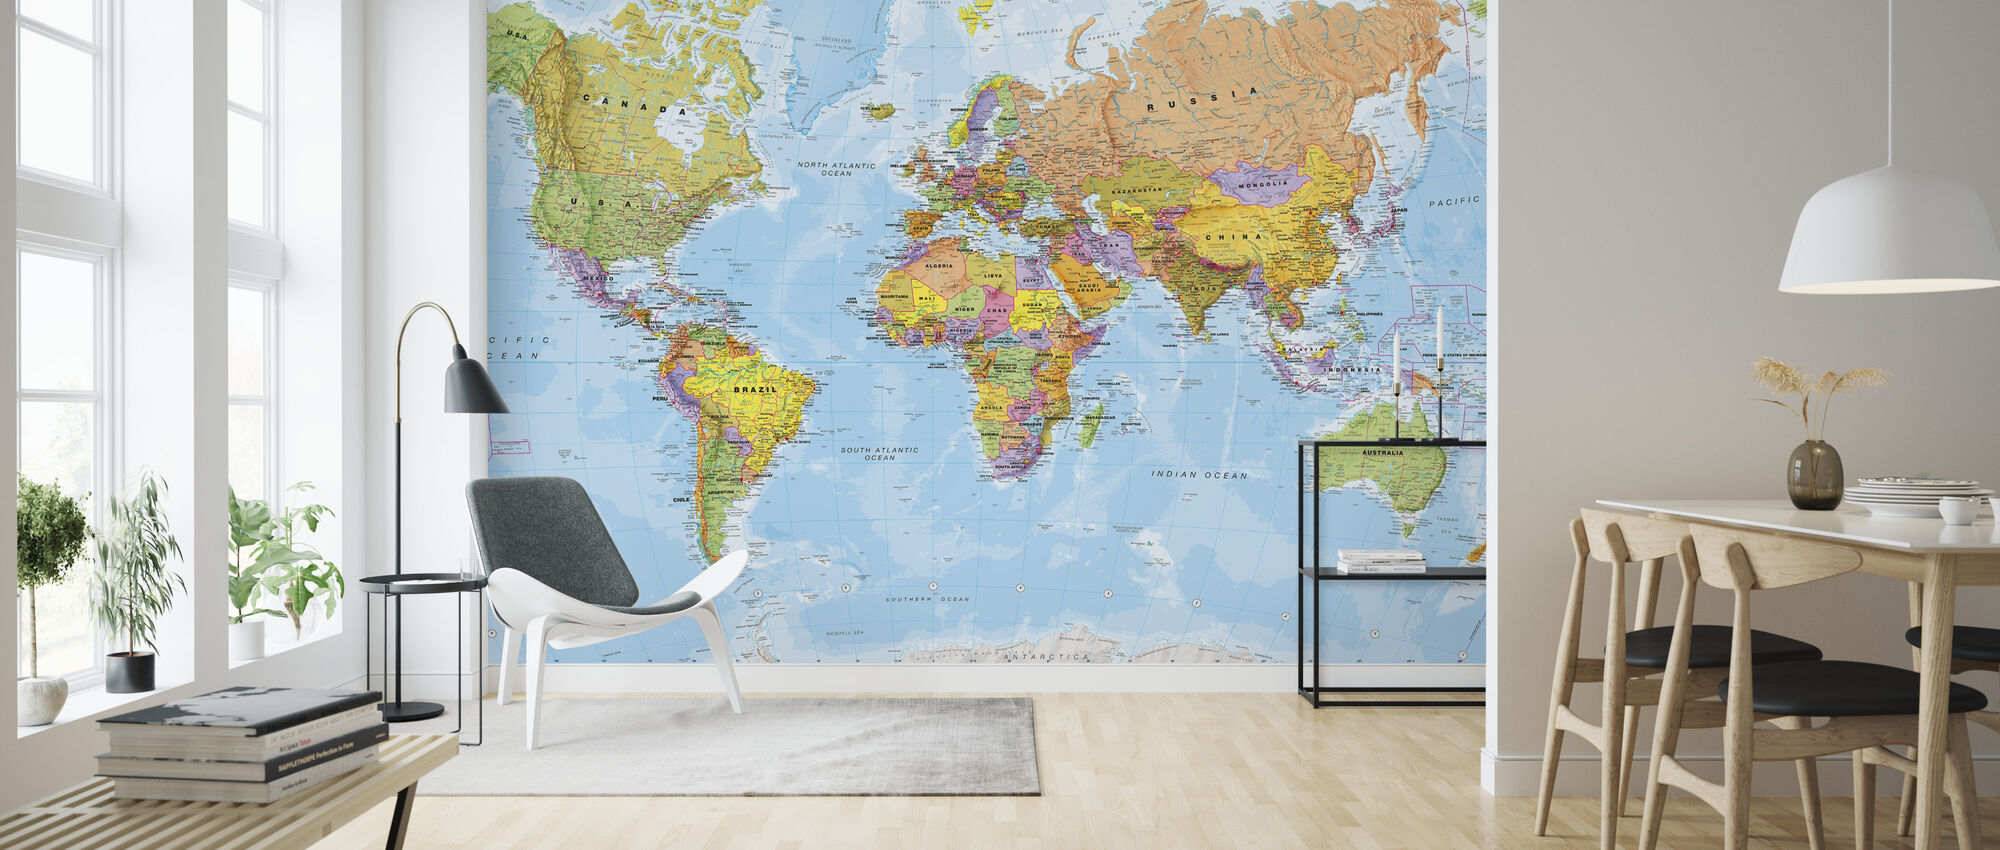 Political World Map - Wallpaper - Living Room